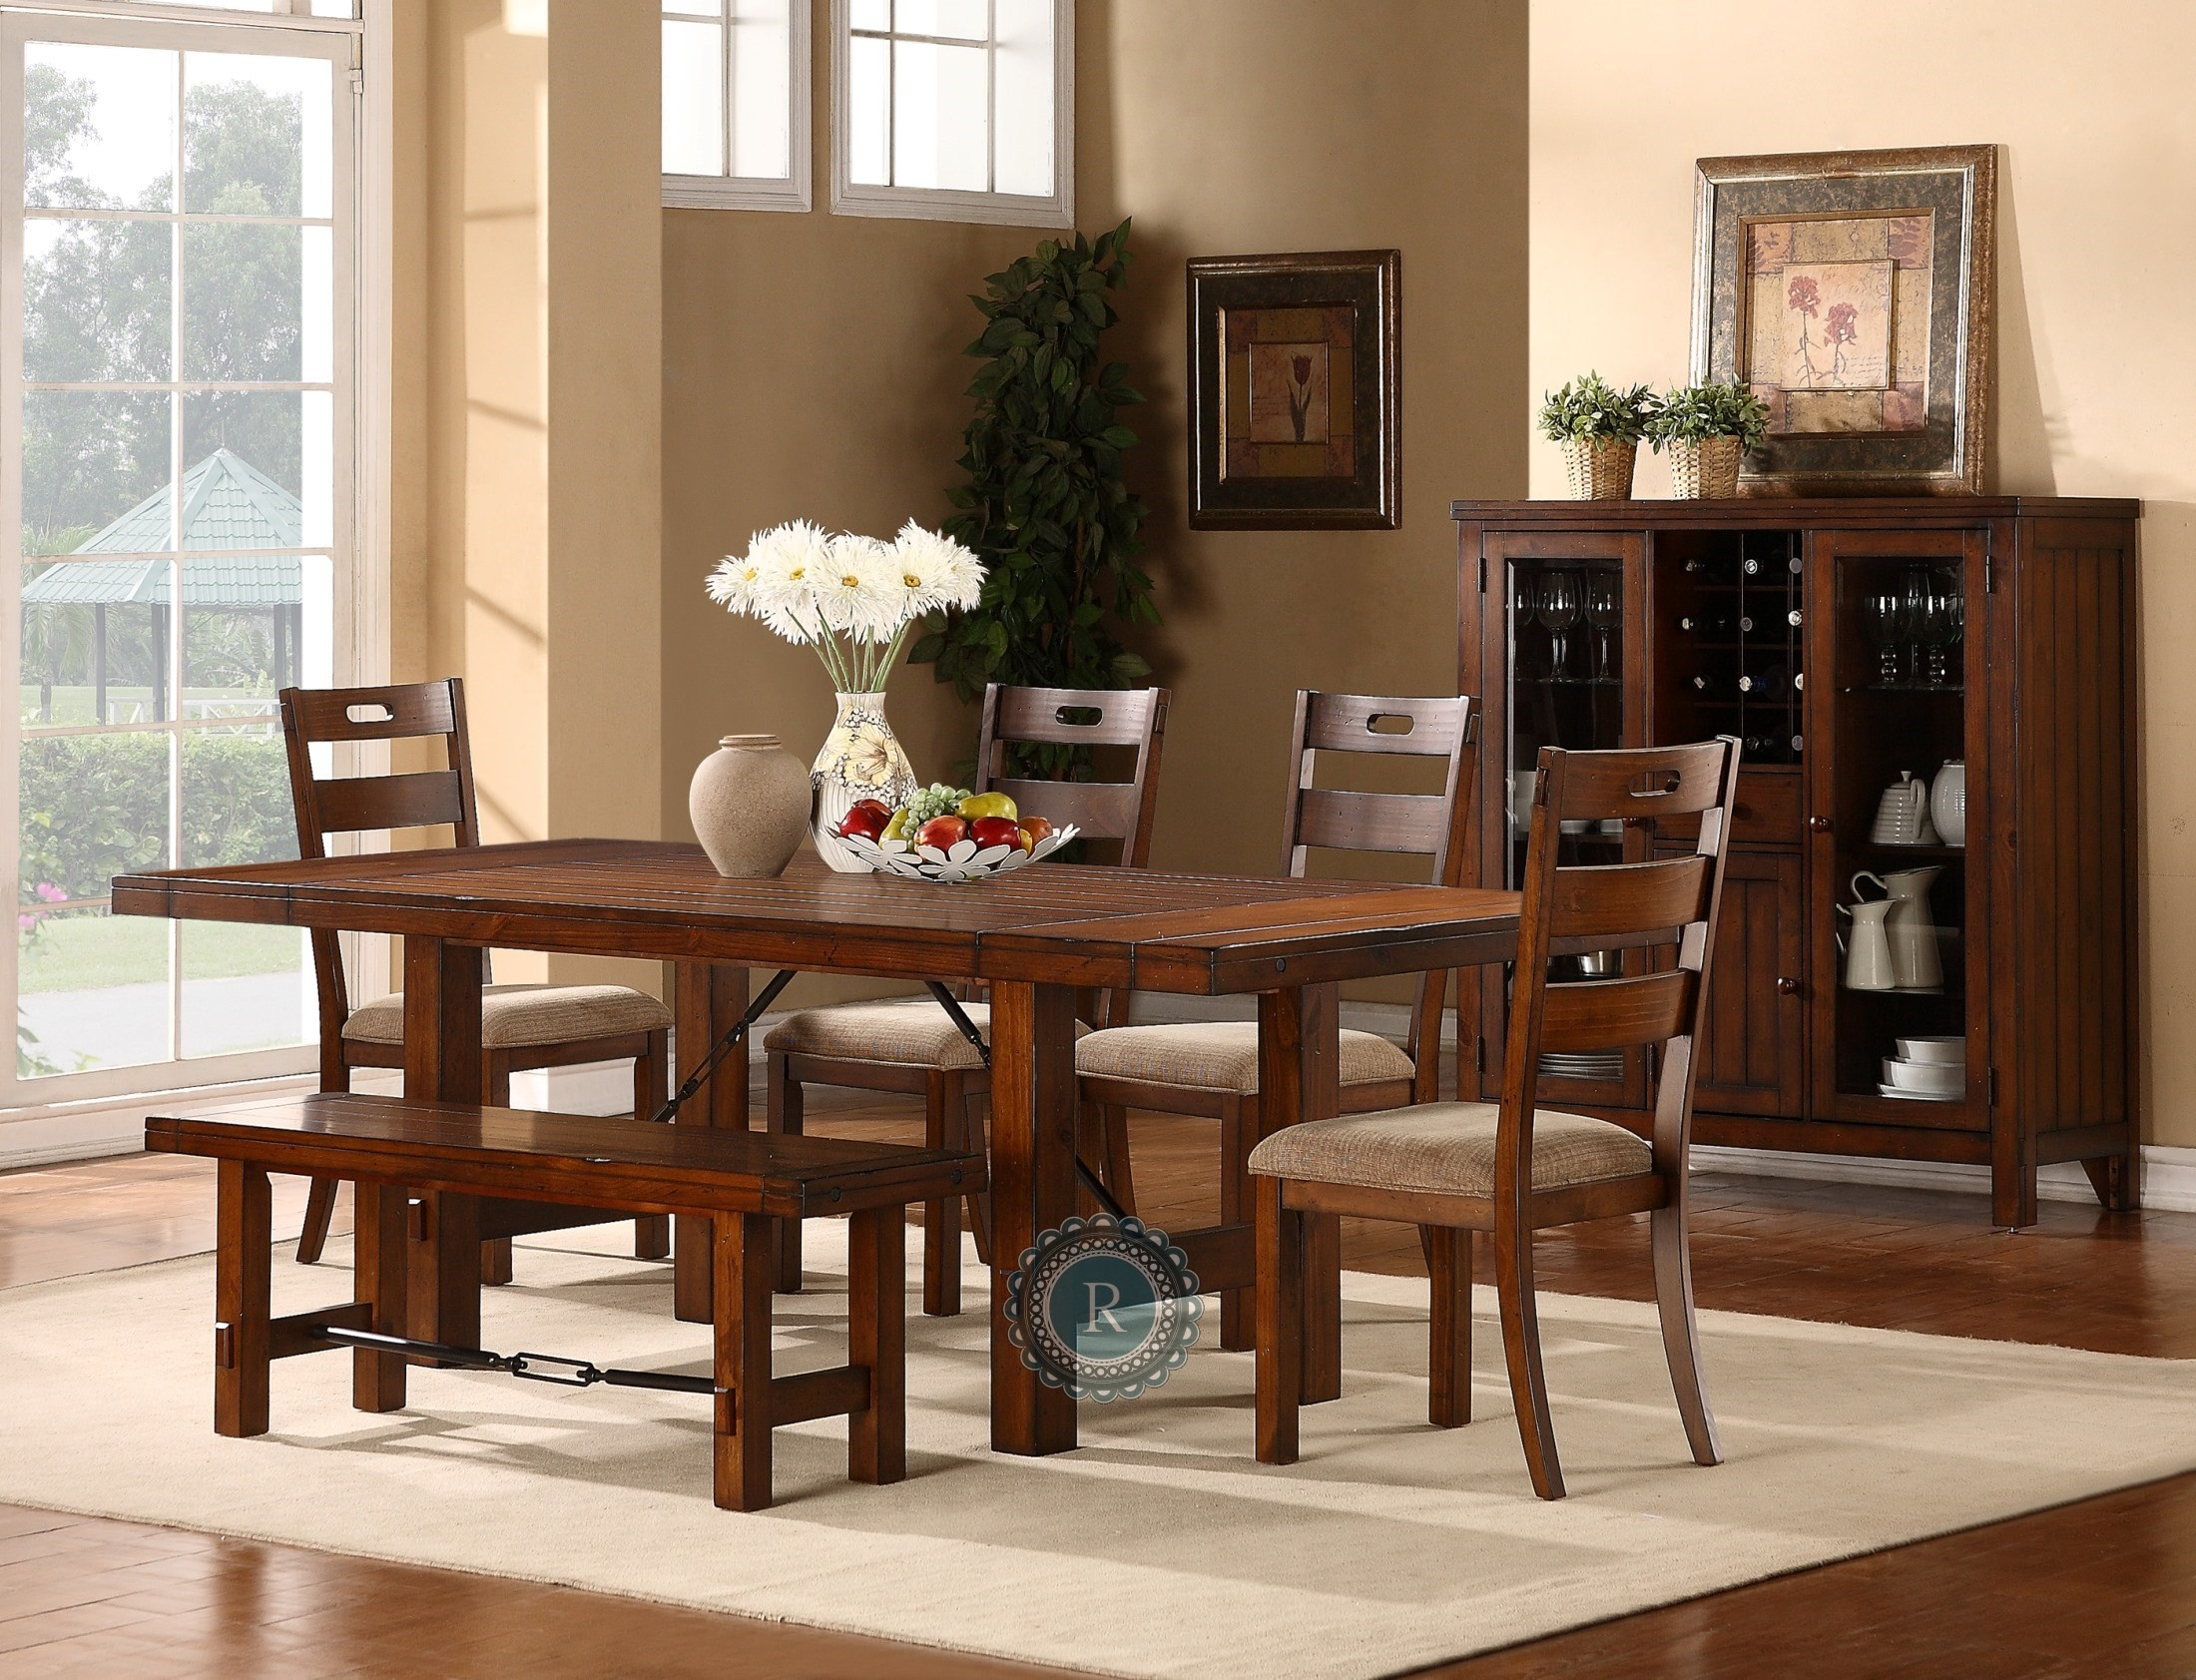 dining room sets atlanta ga conforama lampadari 7382